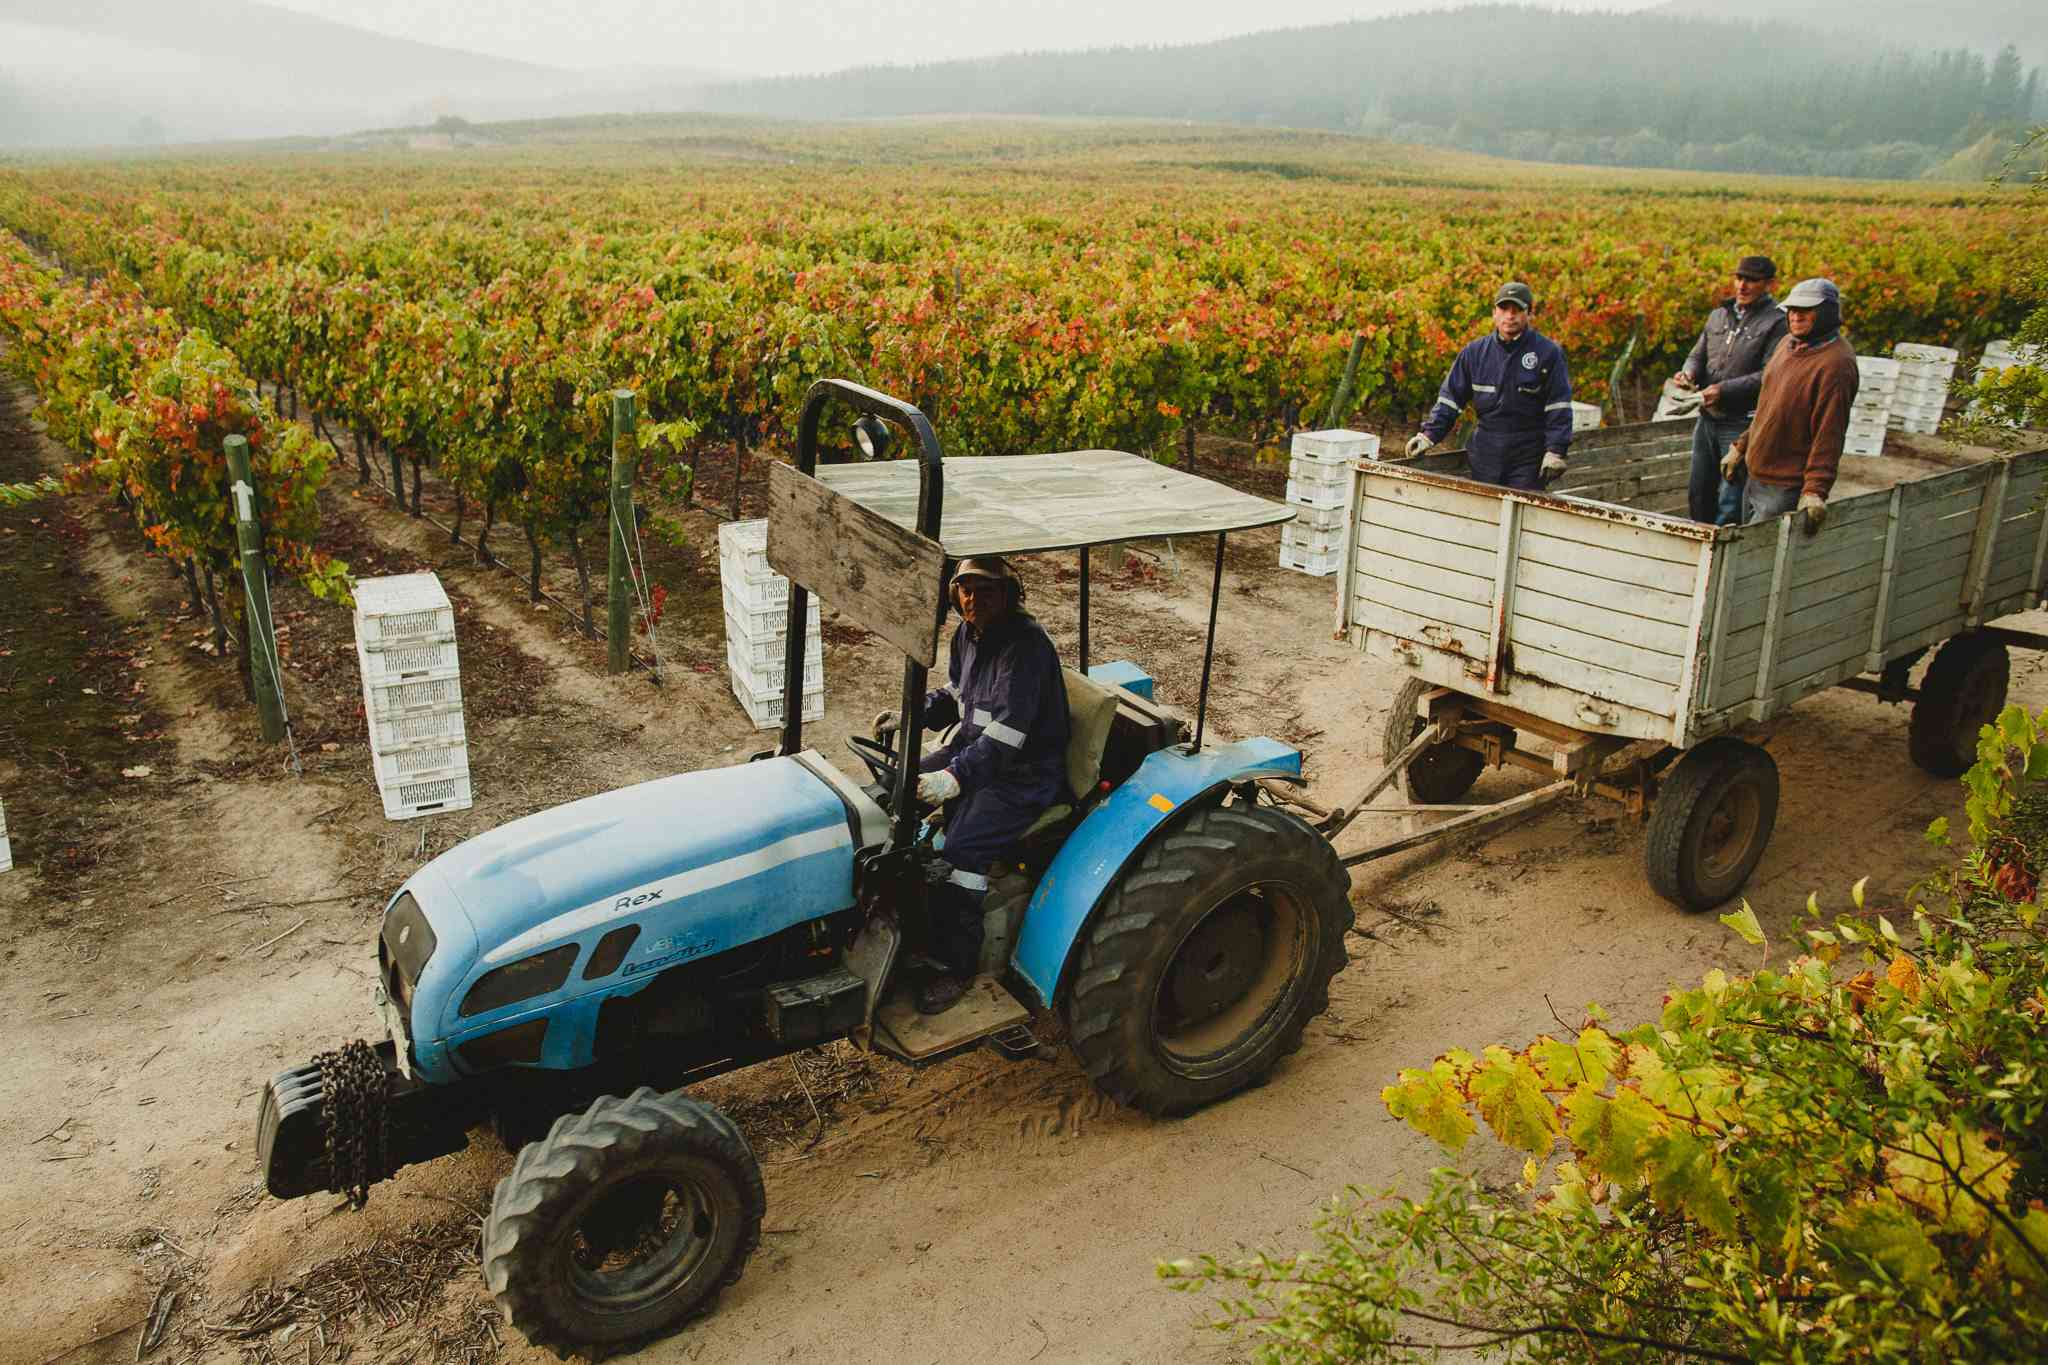 A tractor going through the vineyard